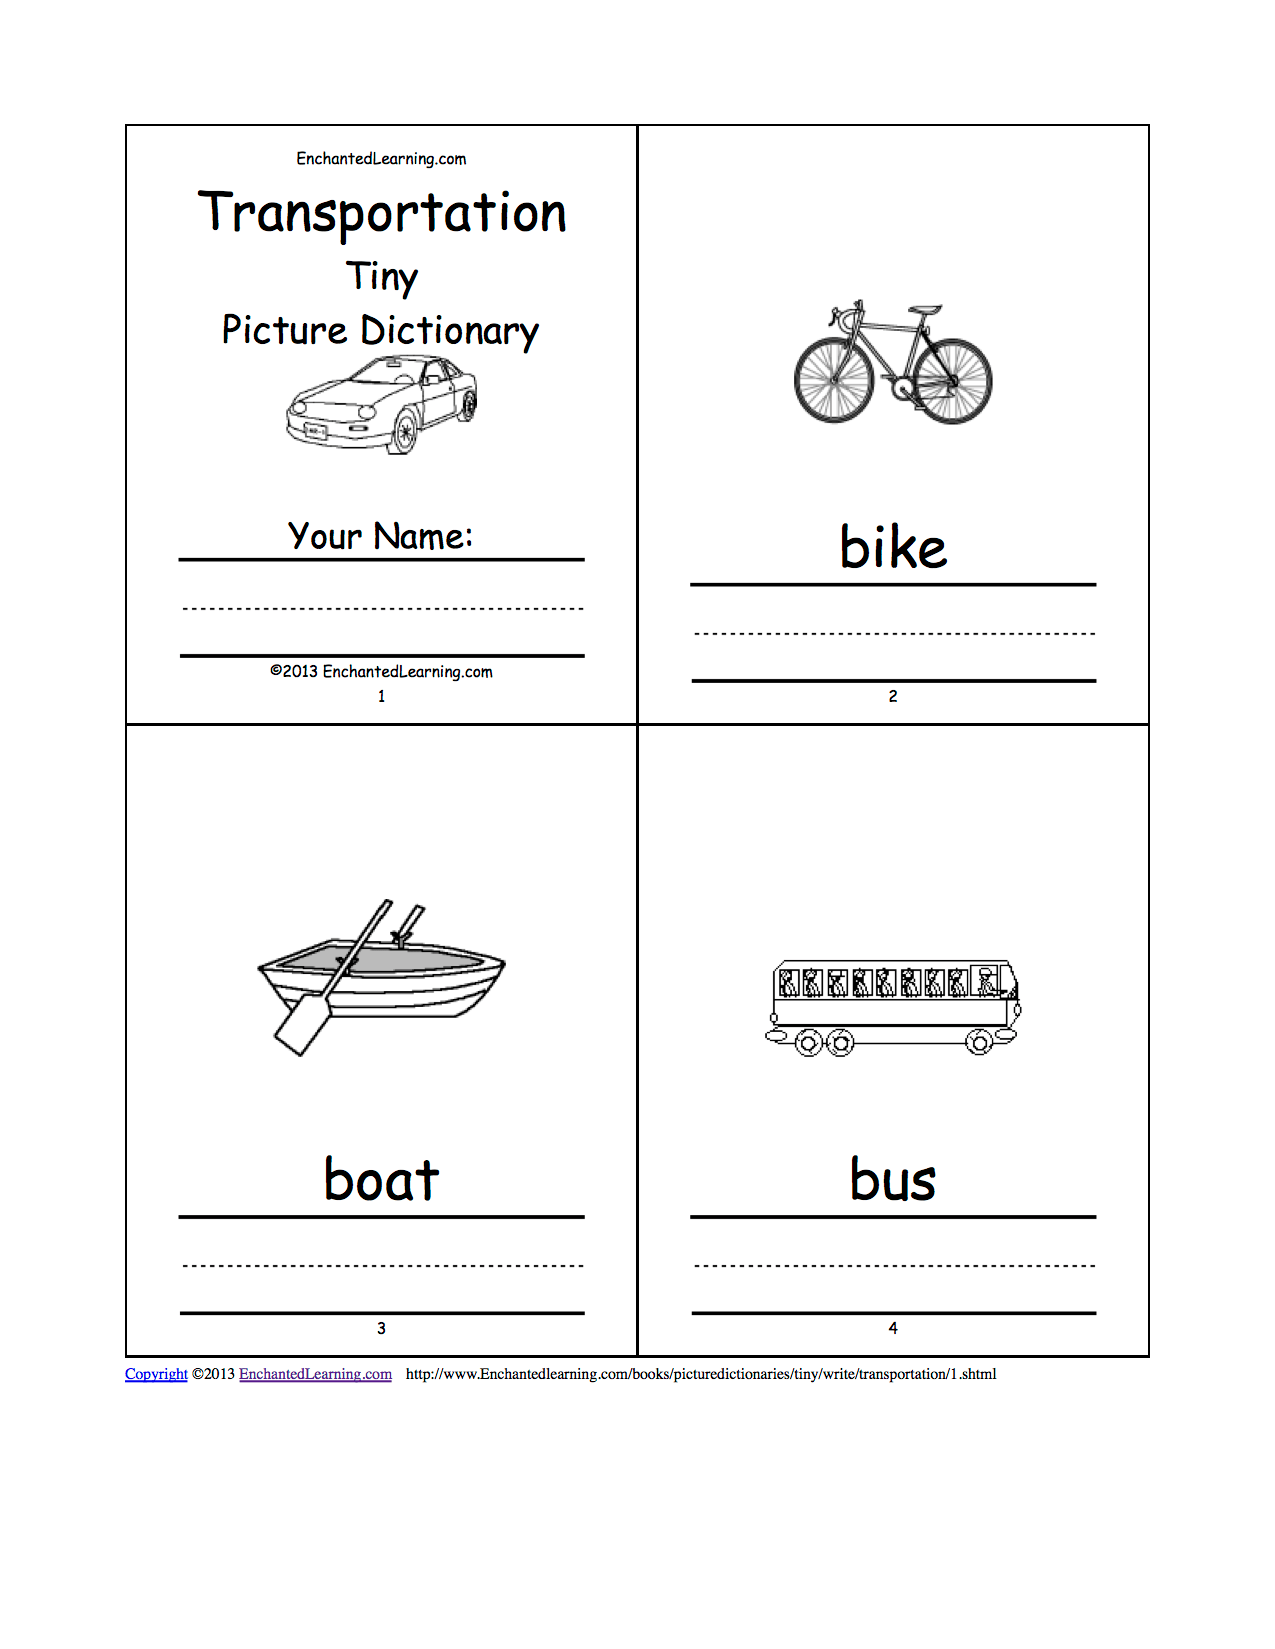 Transportation Tiny Picture Dictionary